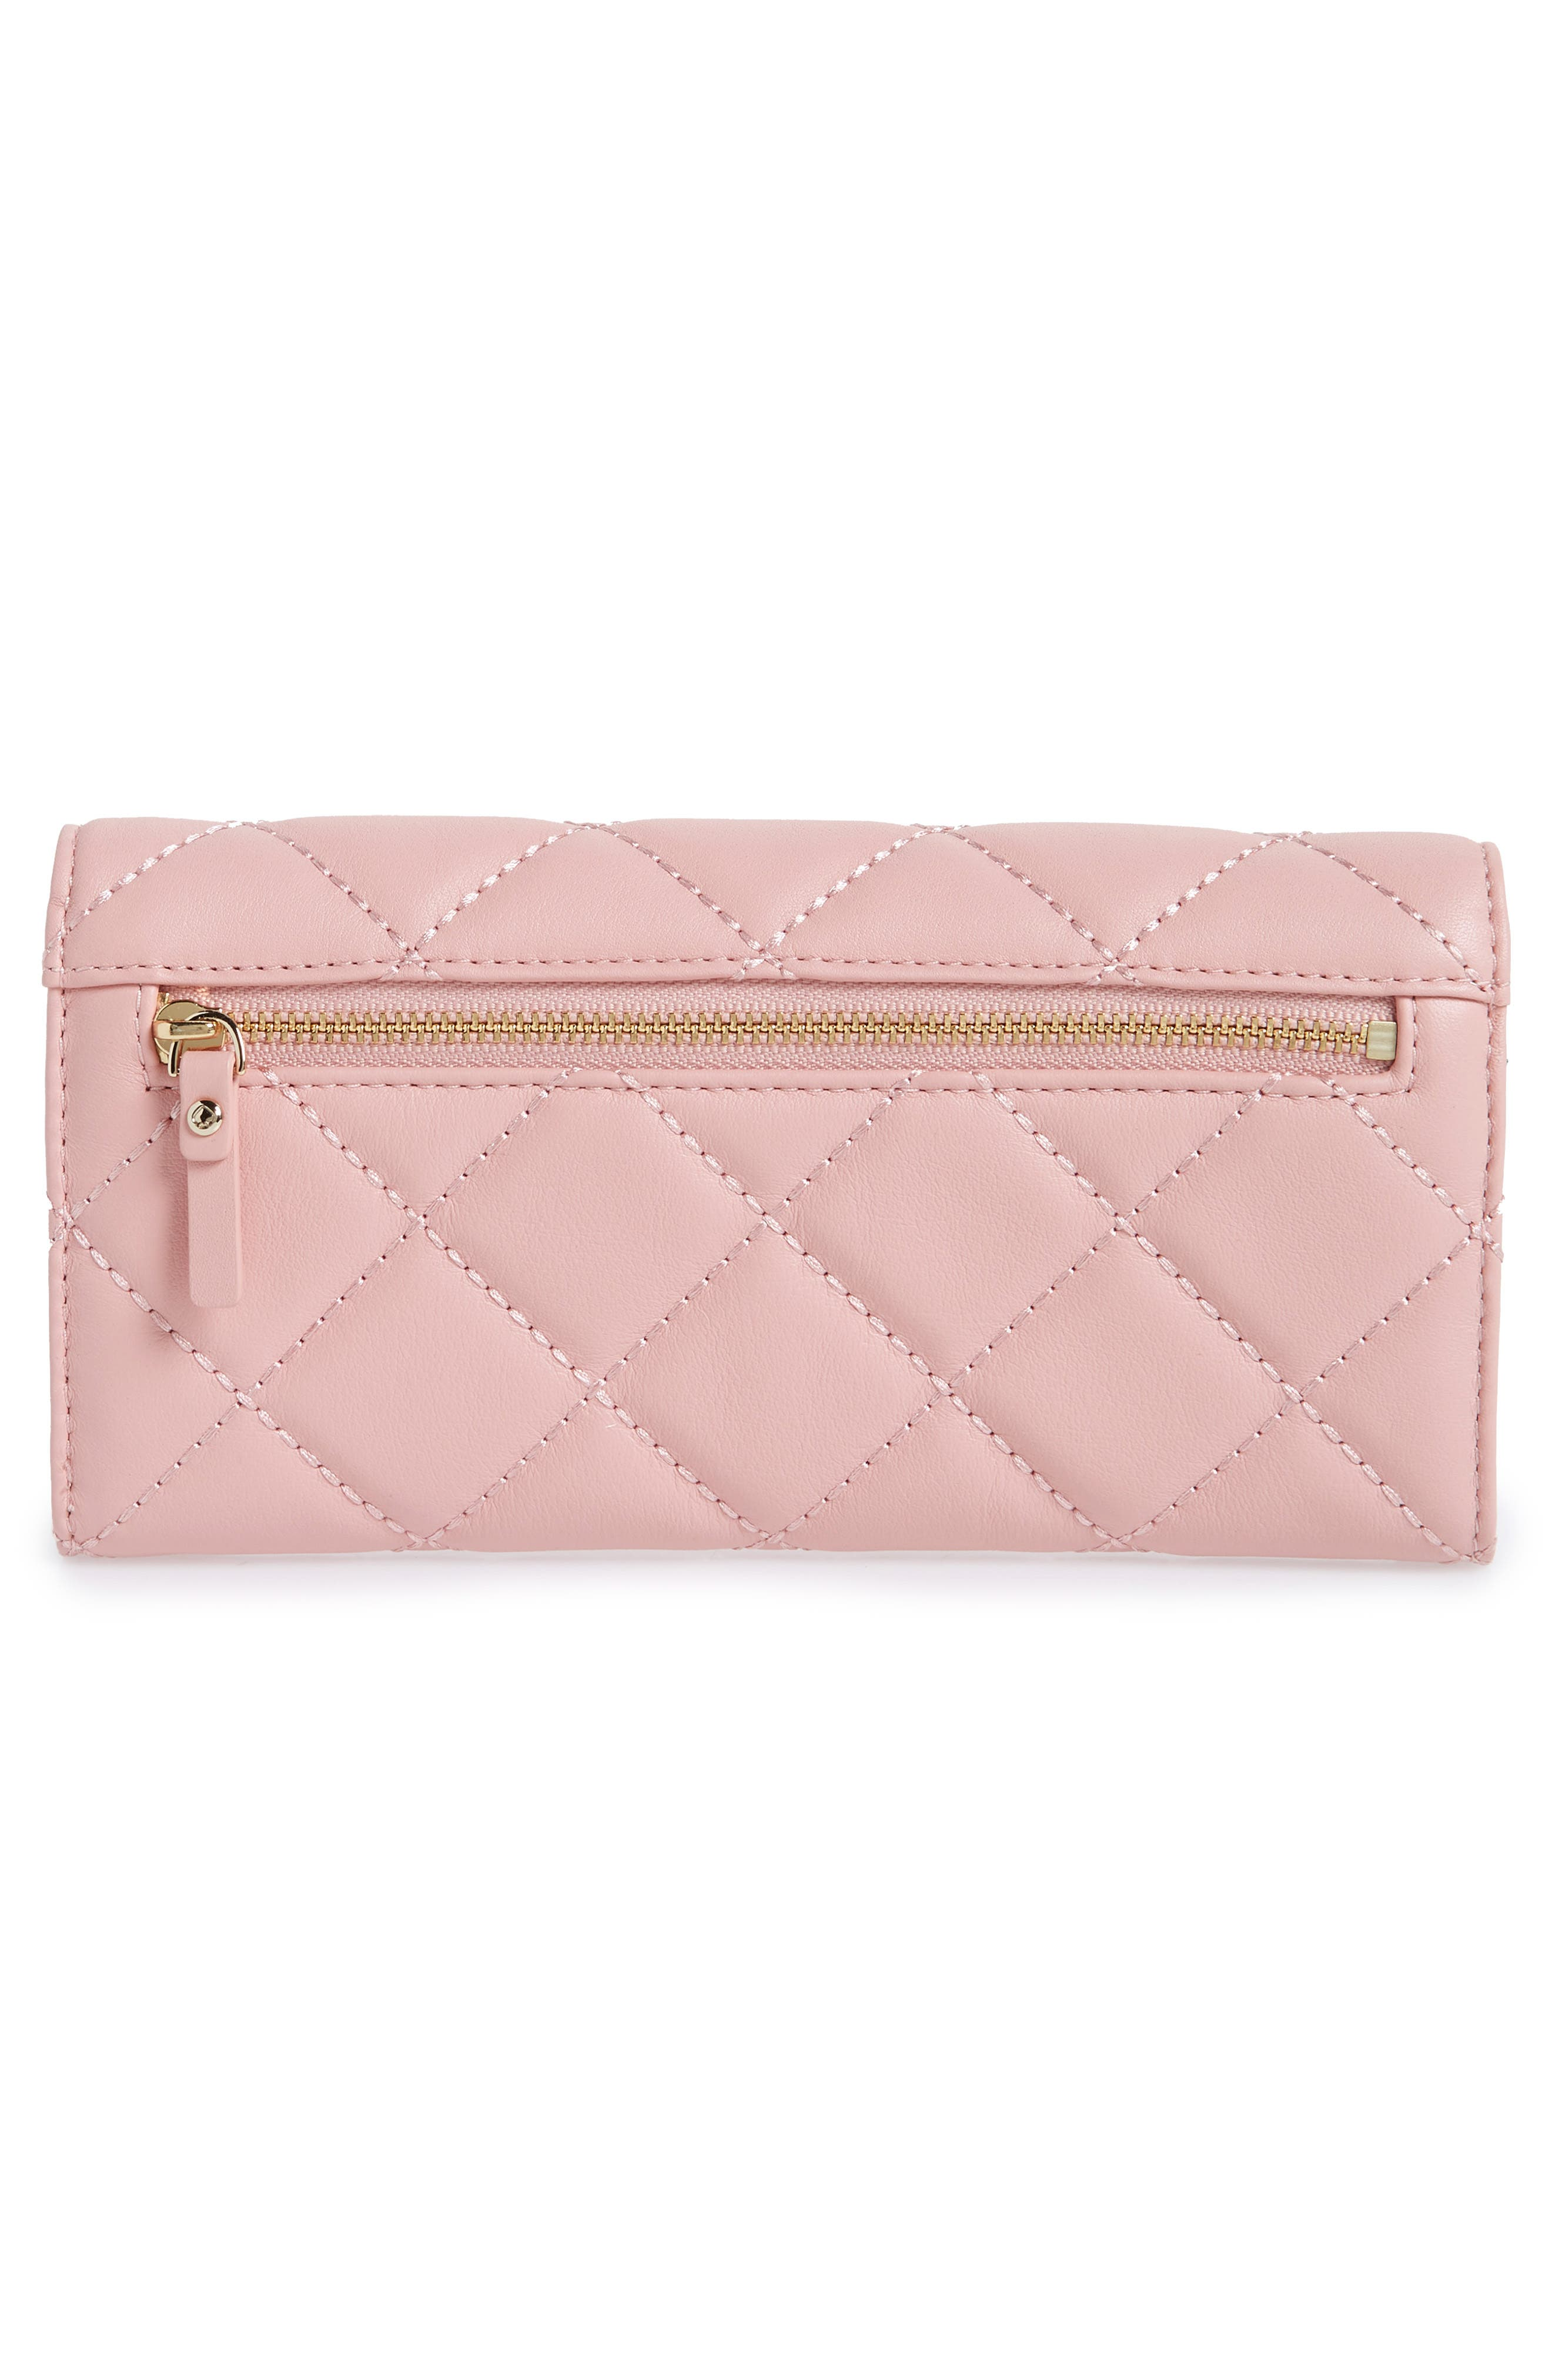 emerson place - kinsley quilted leather wallet,                             Alternate thumbnail 6, color,                             Rosy Cheeks